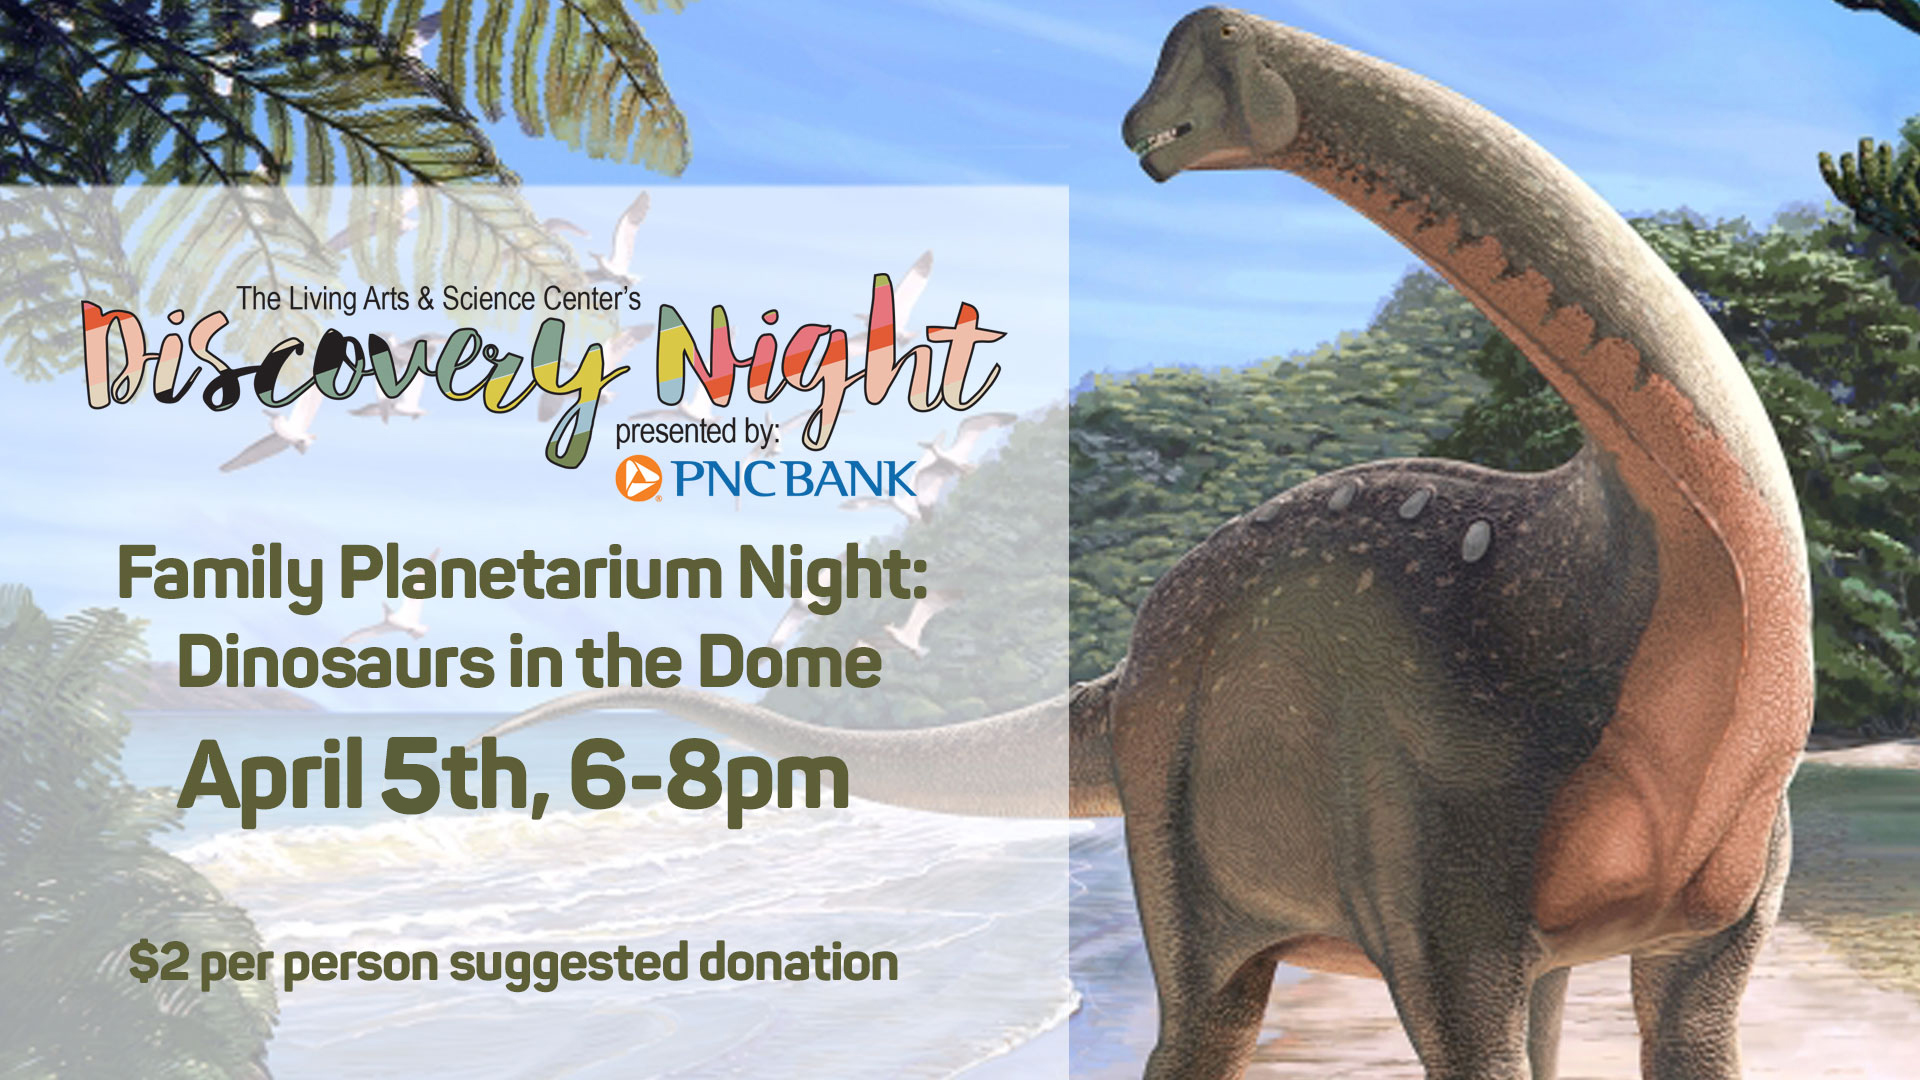 Discovery Night, Family Planetarium Night: Dinosaurs In The Dome